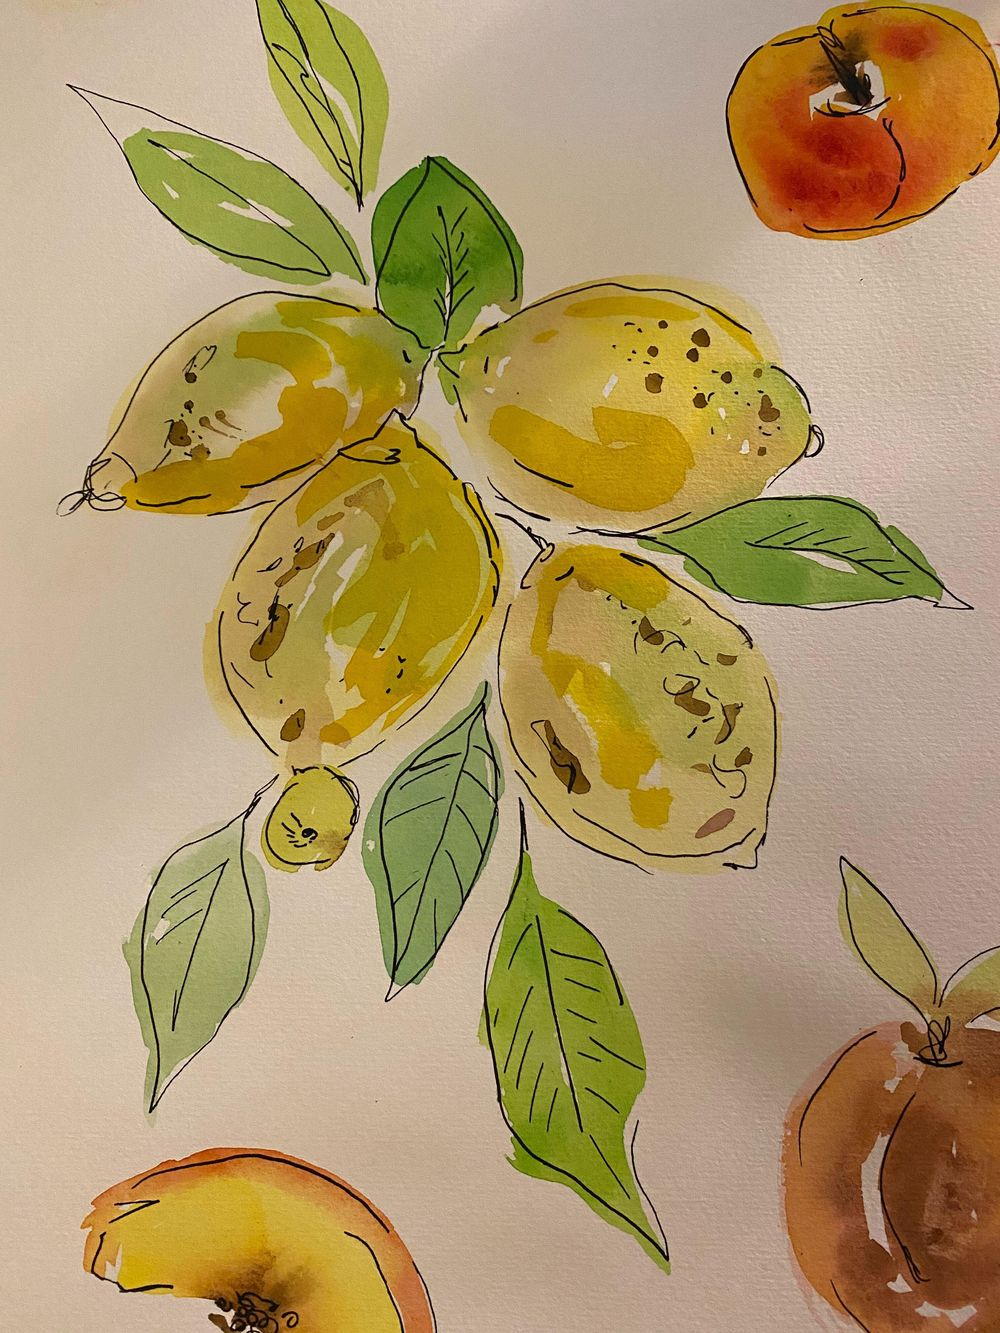 watercolor + ink practice - image 7 - student project